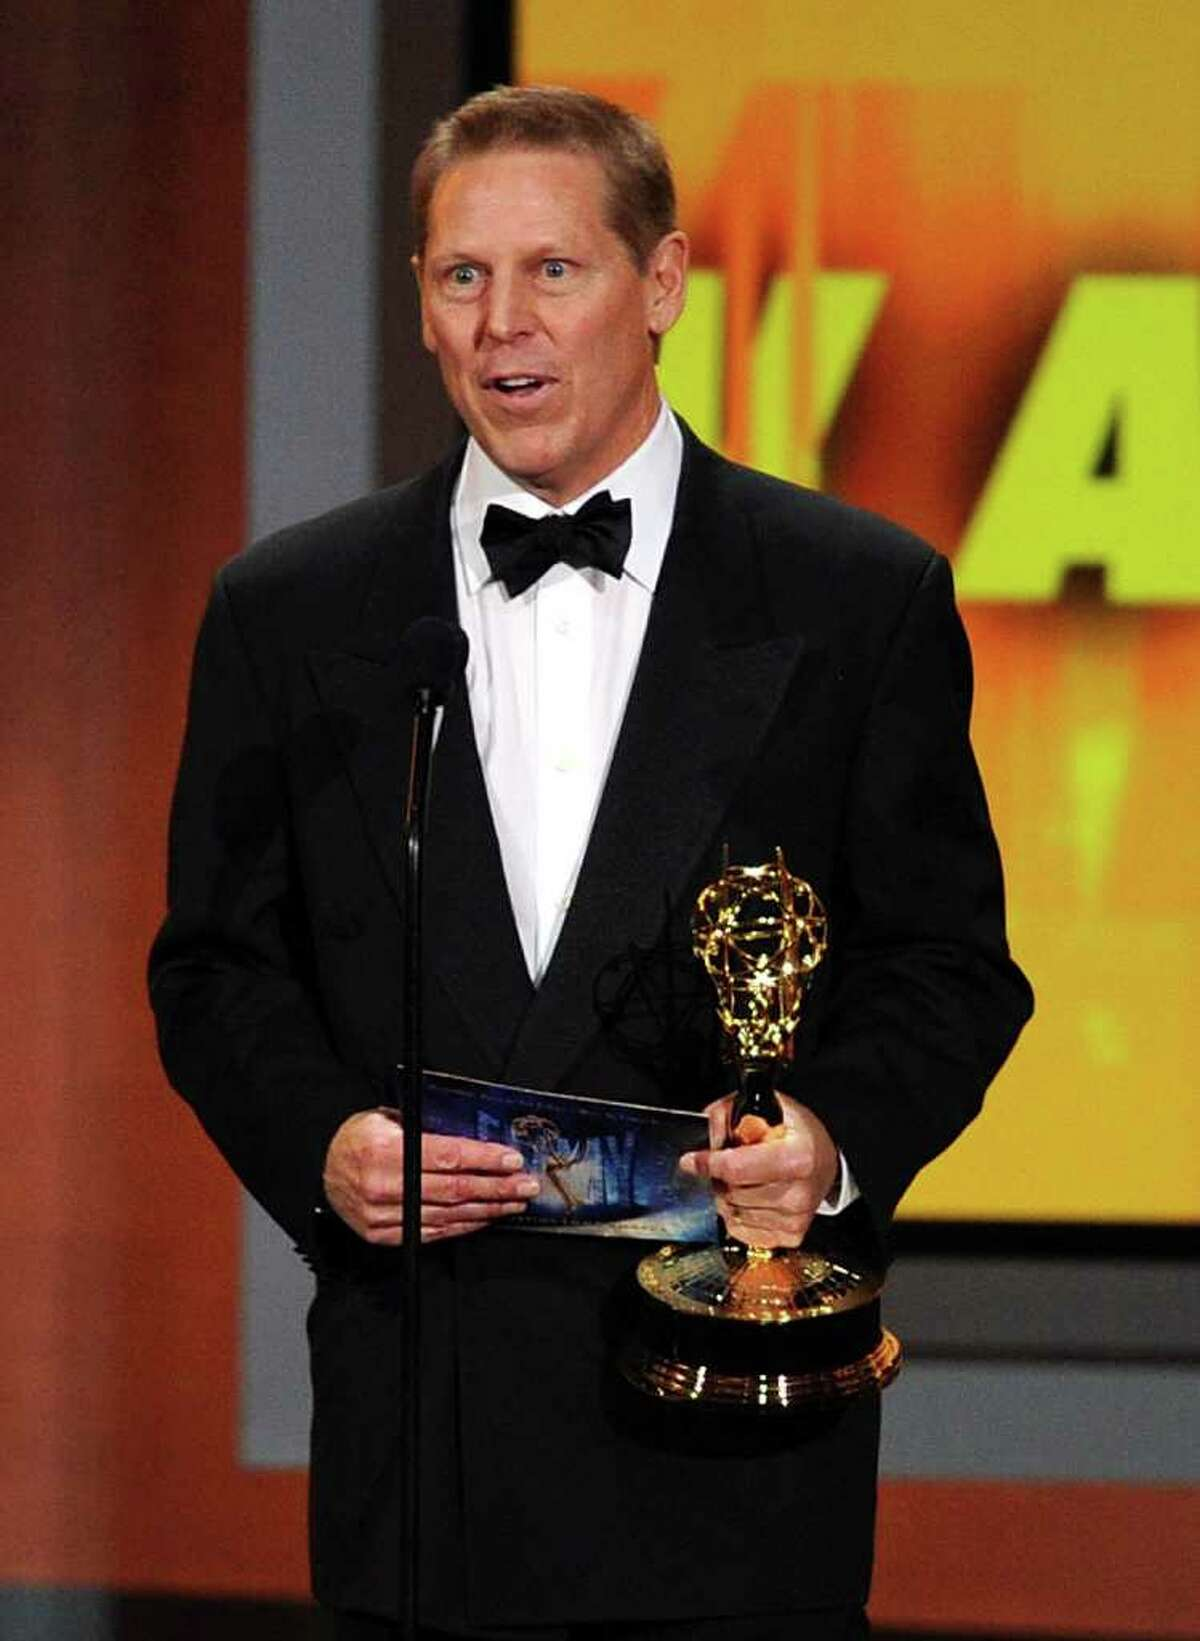 Wilton resident Bucky Gunts accepts the Outstanding Directing for a Variety, Music, or Comedy Special award onstage at the 62nd Annual Primetime Emmy Awards held at the Nokia Theatre L.A. Live on August 29, 2010 in Los Angeles, California.